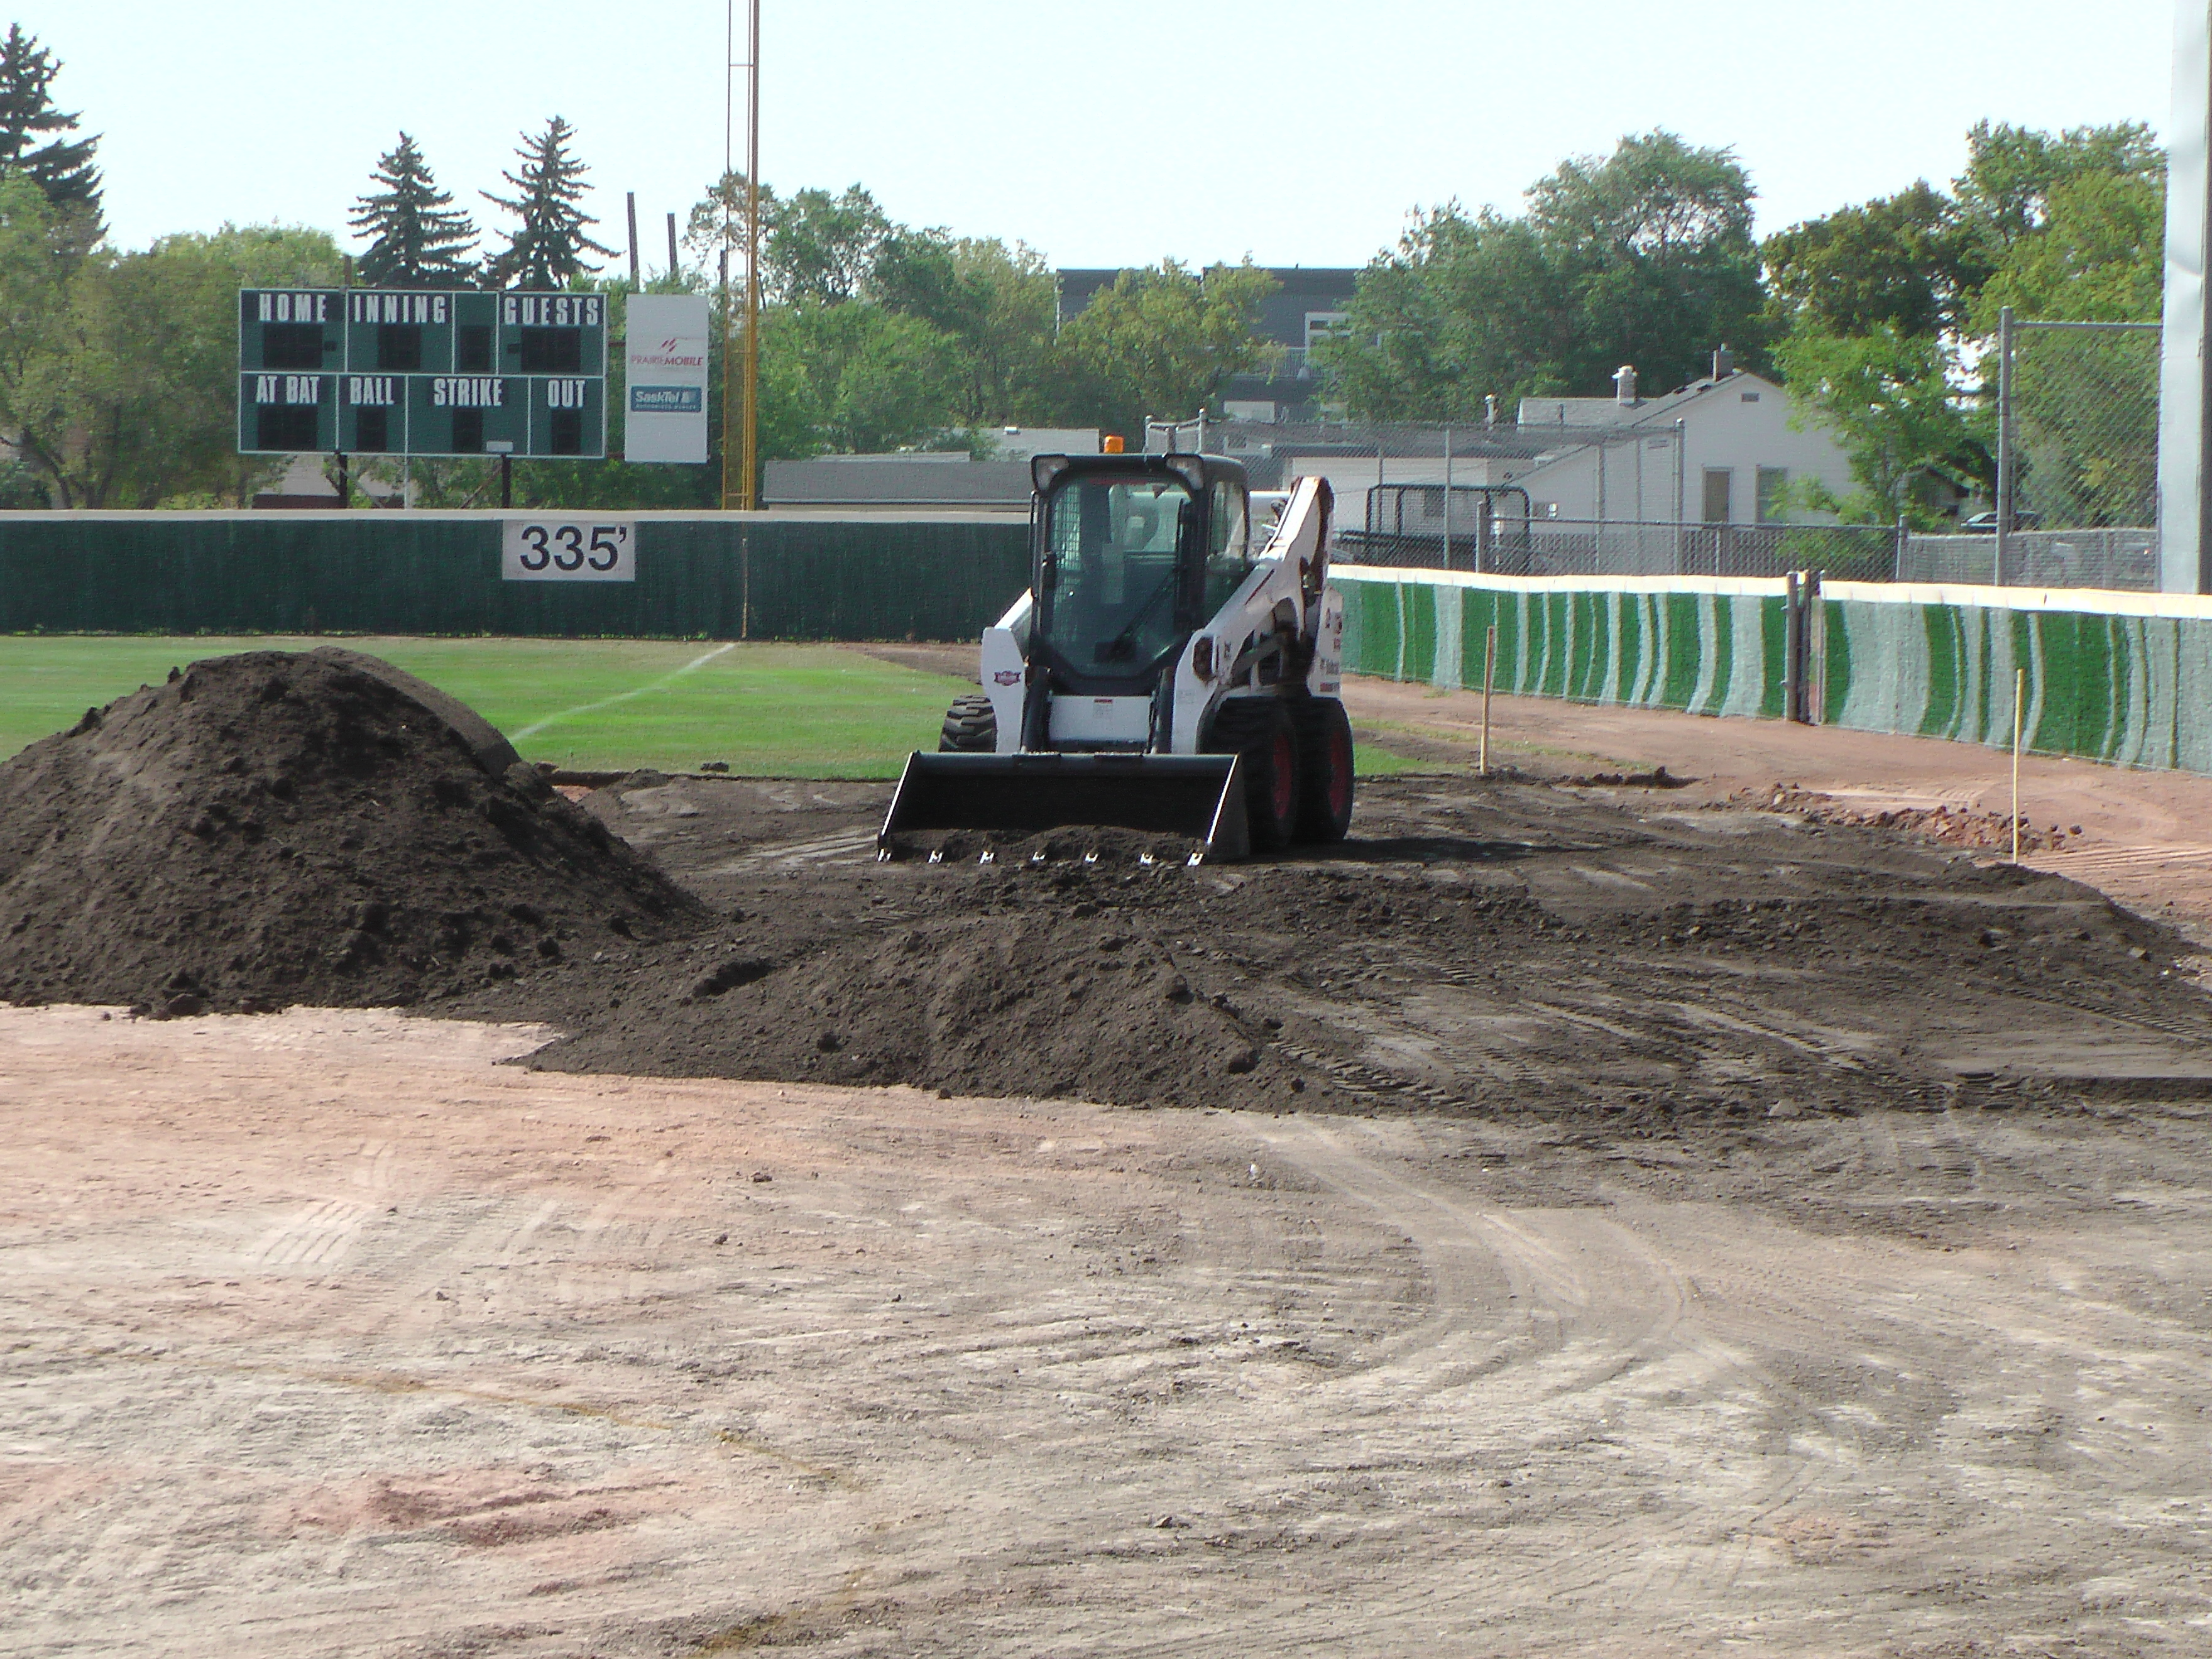 Aug 22 Optimist Park Field Renovations: New Top Soil Going In, after 45 dump trucks of dirt and grass removed! Pics and Video...check back for more!  - Image 3